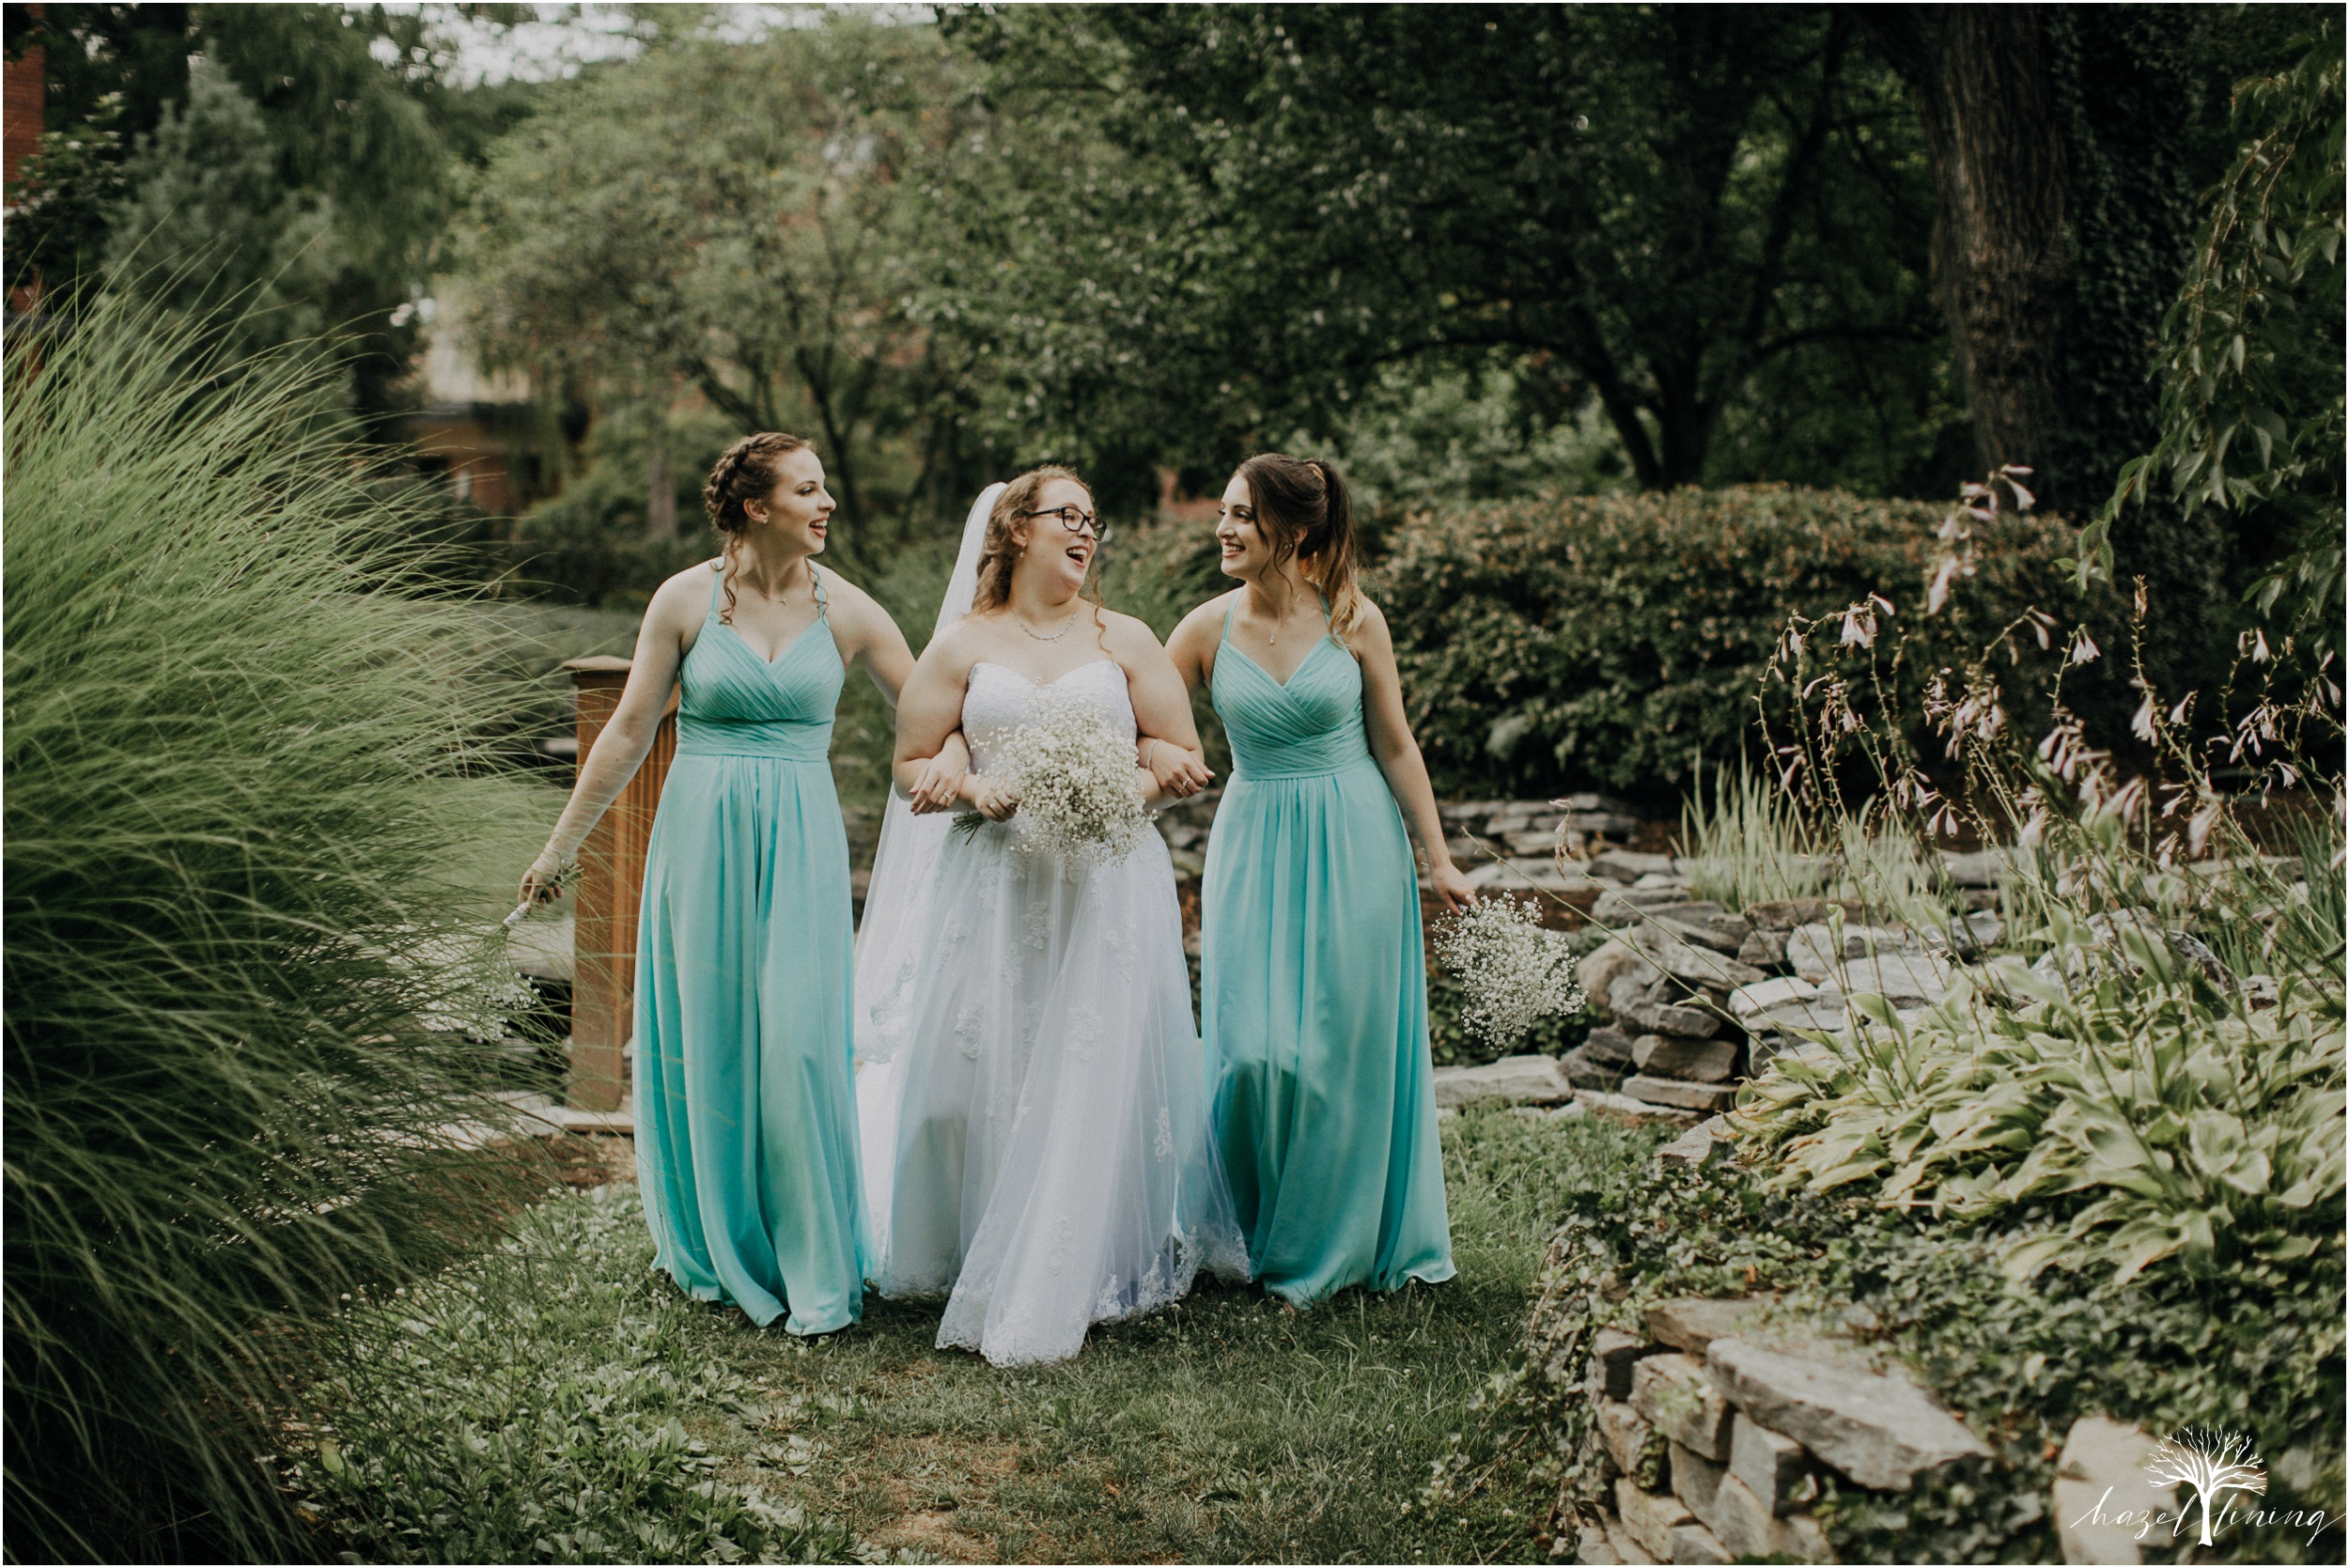 laura-zach-mccaskill-harmony-hall-lebanon-valley-college-summer-wedding-hazel-lining-photography-destination-elopement-wedding-engagement-photography_0039.jpg